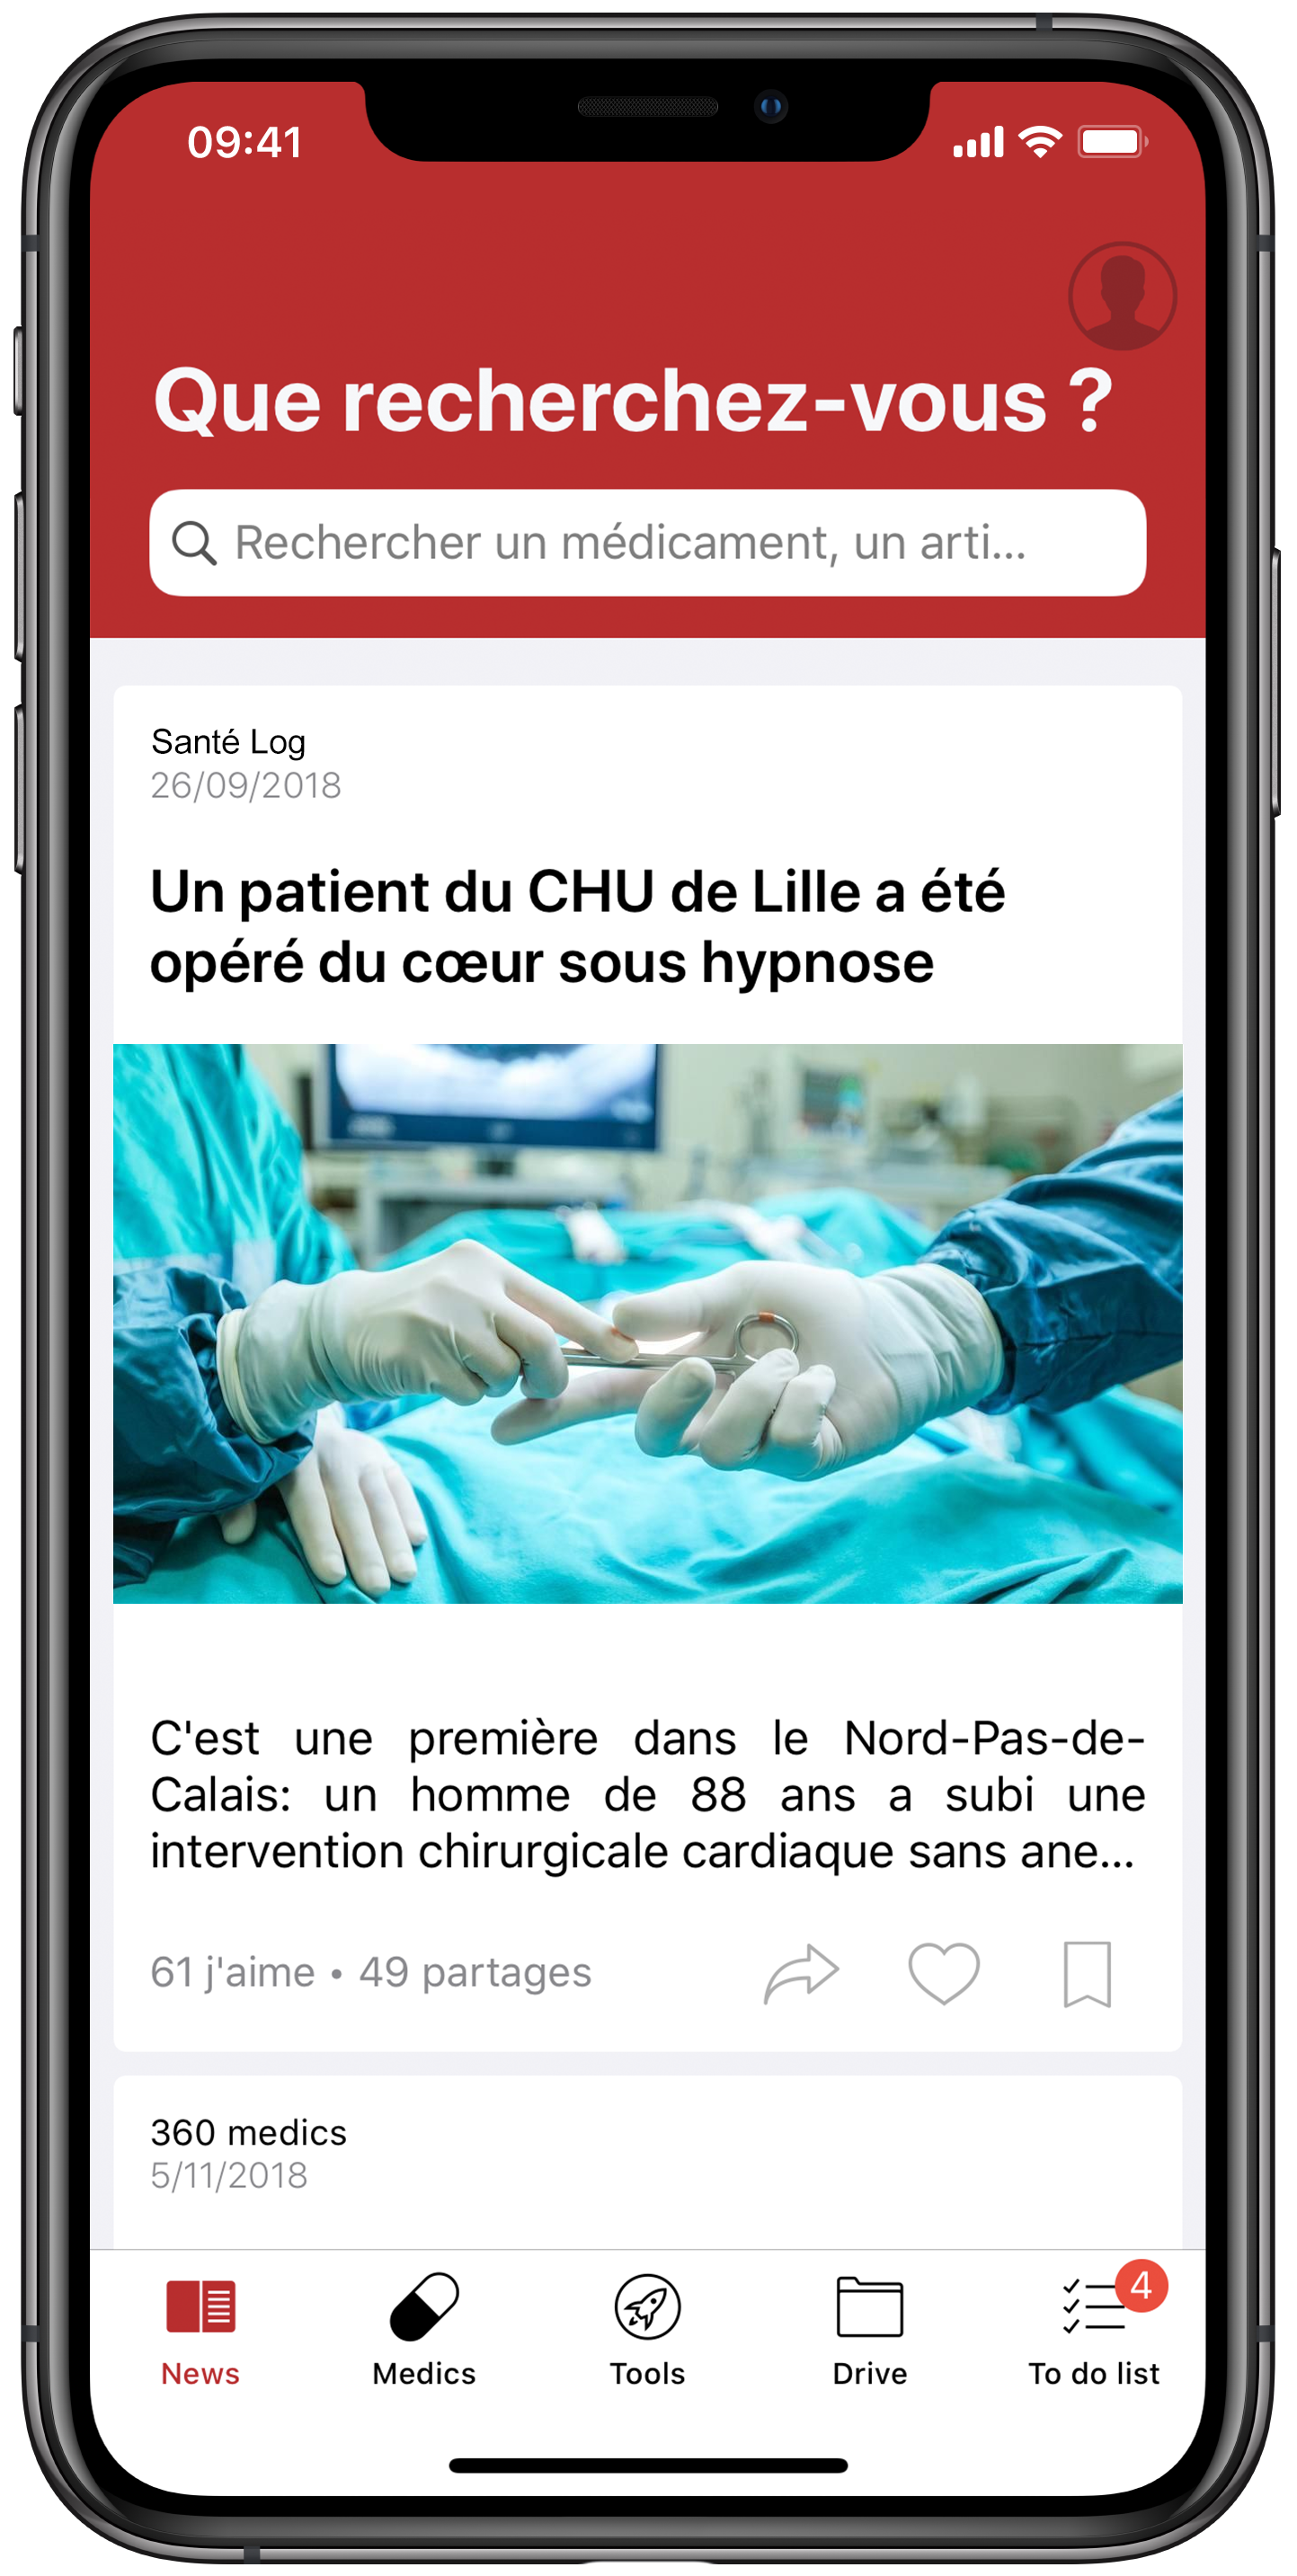 360 medics, a hyperspecialized and personalized news feed